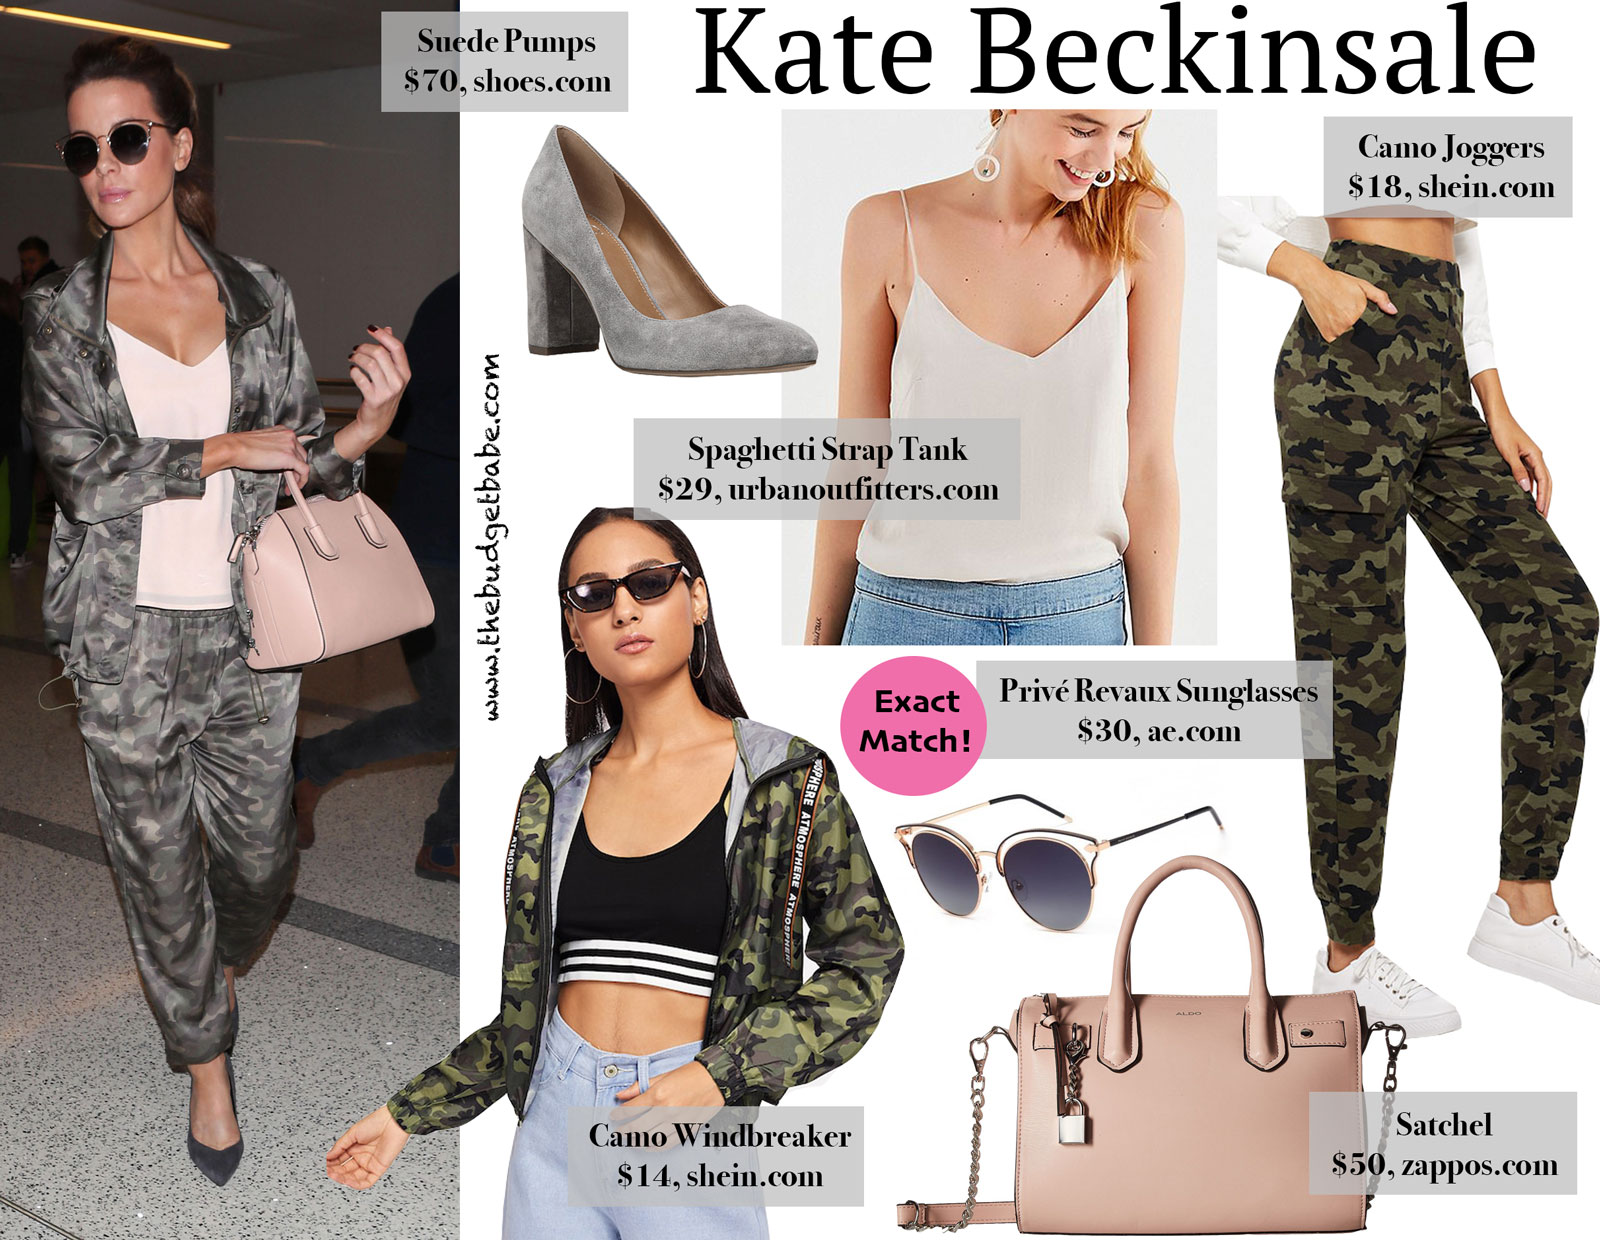 Kate Beckinsale Camo and Privé Revaux Sunglasses Look for Less